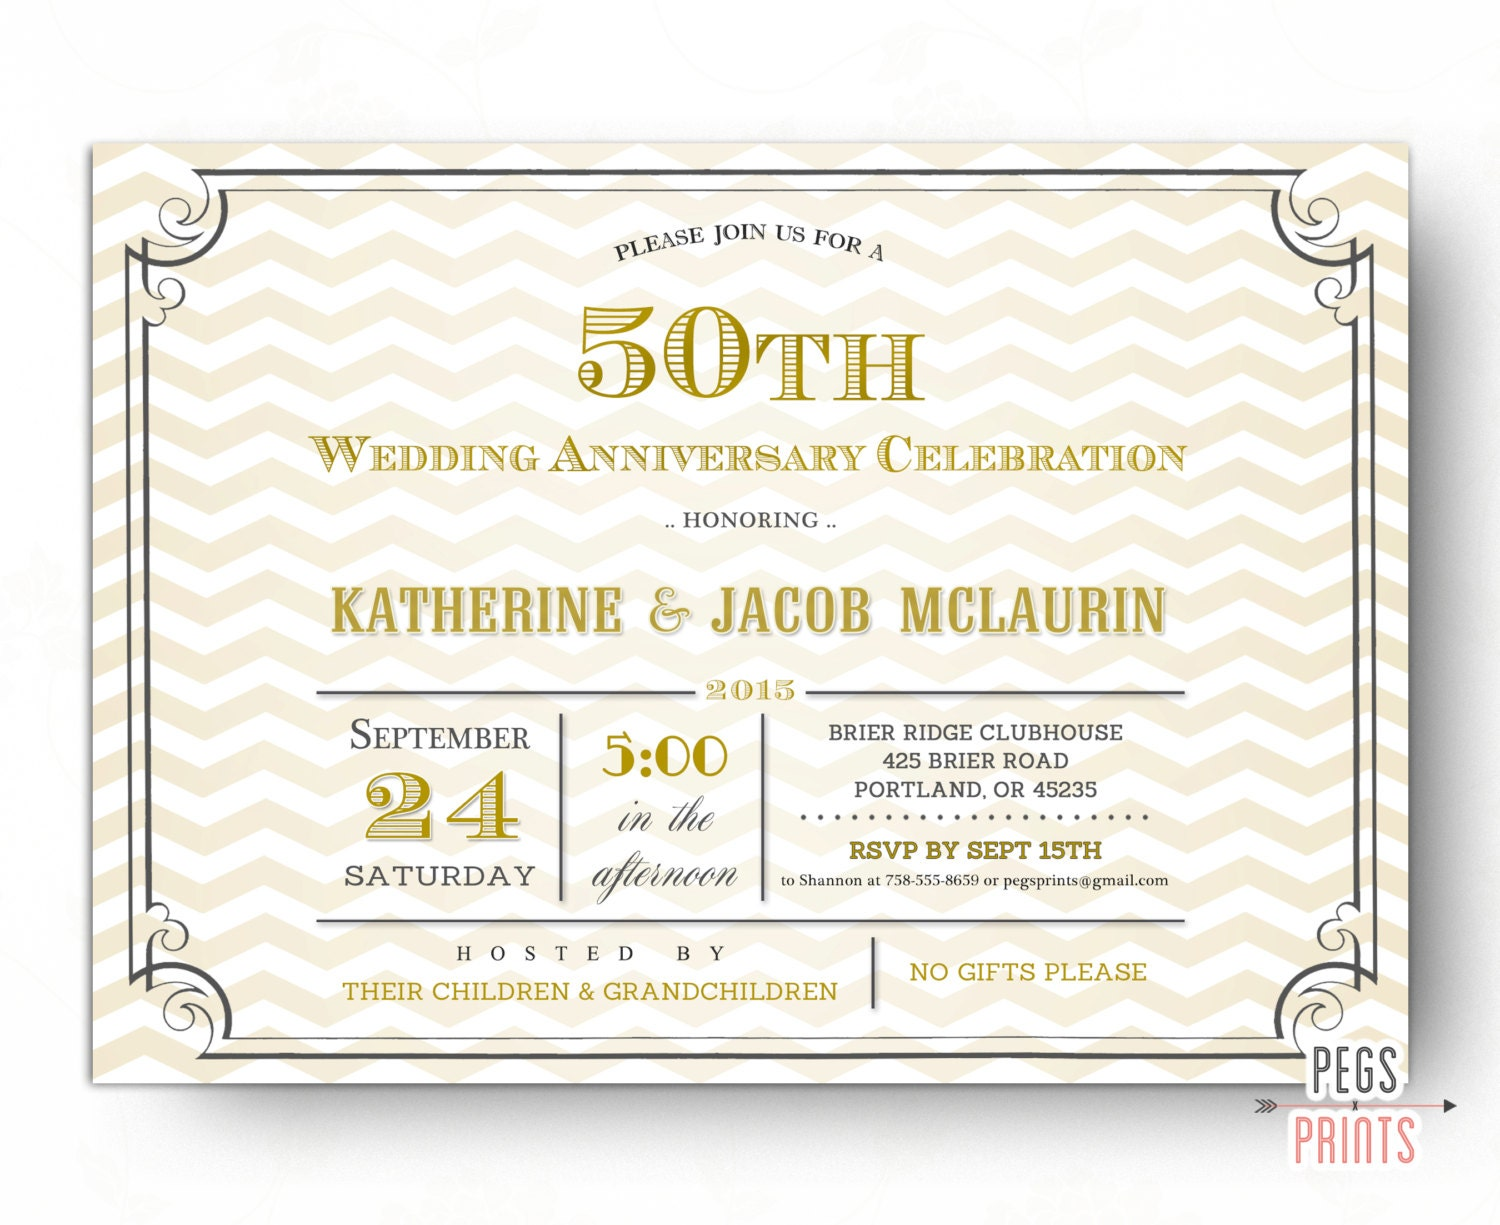 Fiftieth Wedding Anniversary Invitations: Golden Anniversary Invitation Printable // 50th Anniversary